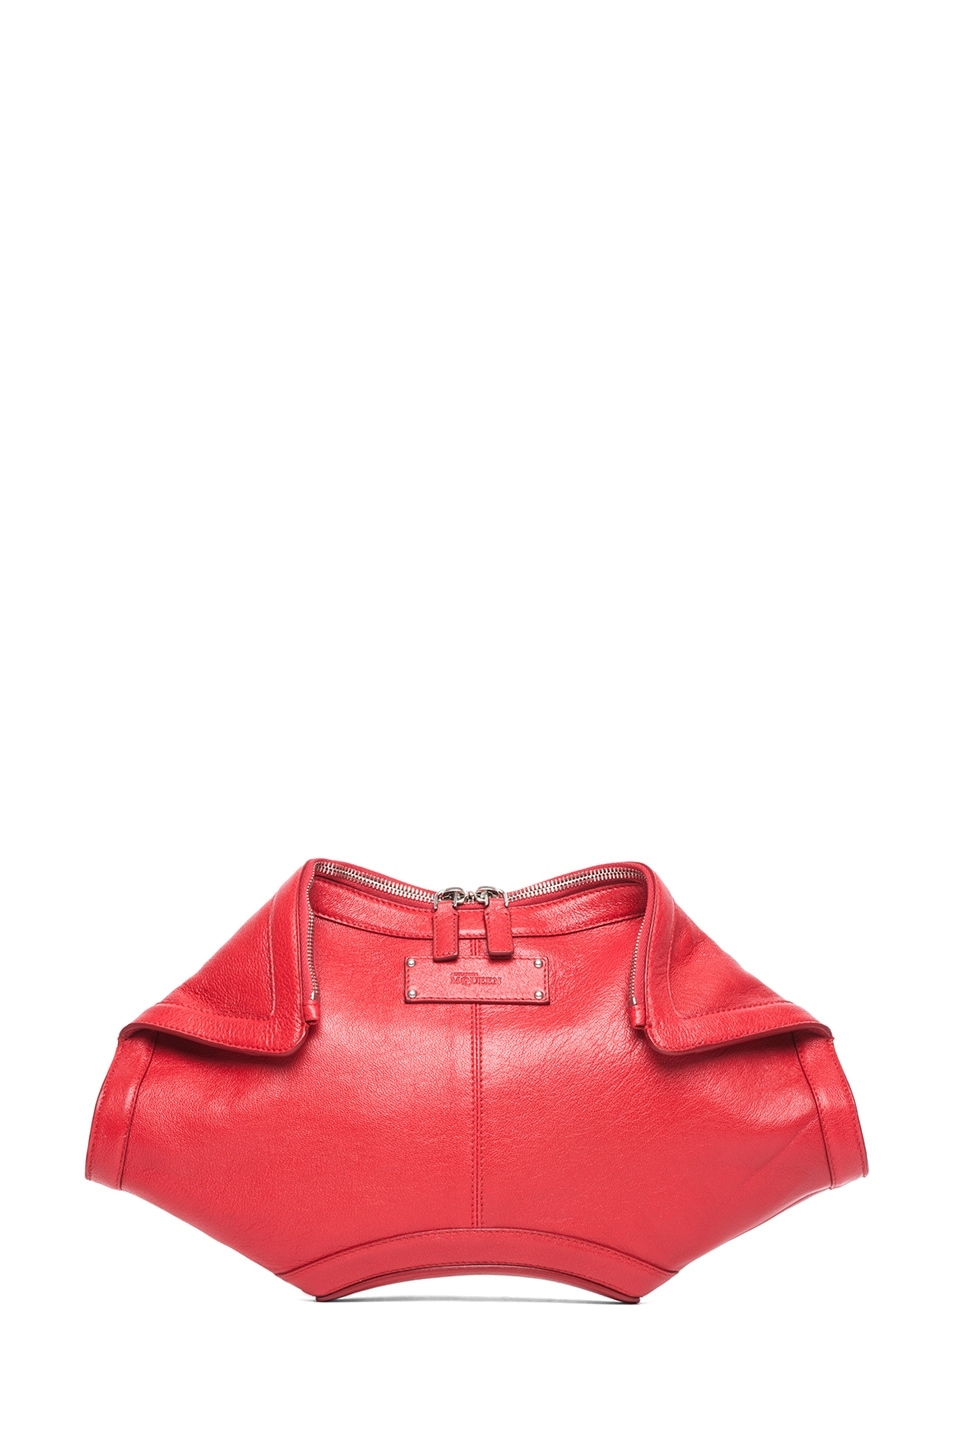 Image 1 of Alexander McQueen De Manta Clutch in Shiny Red